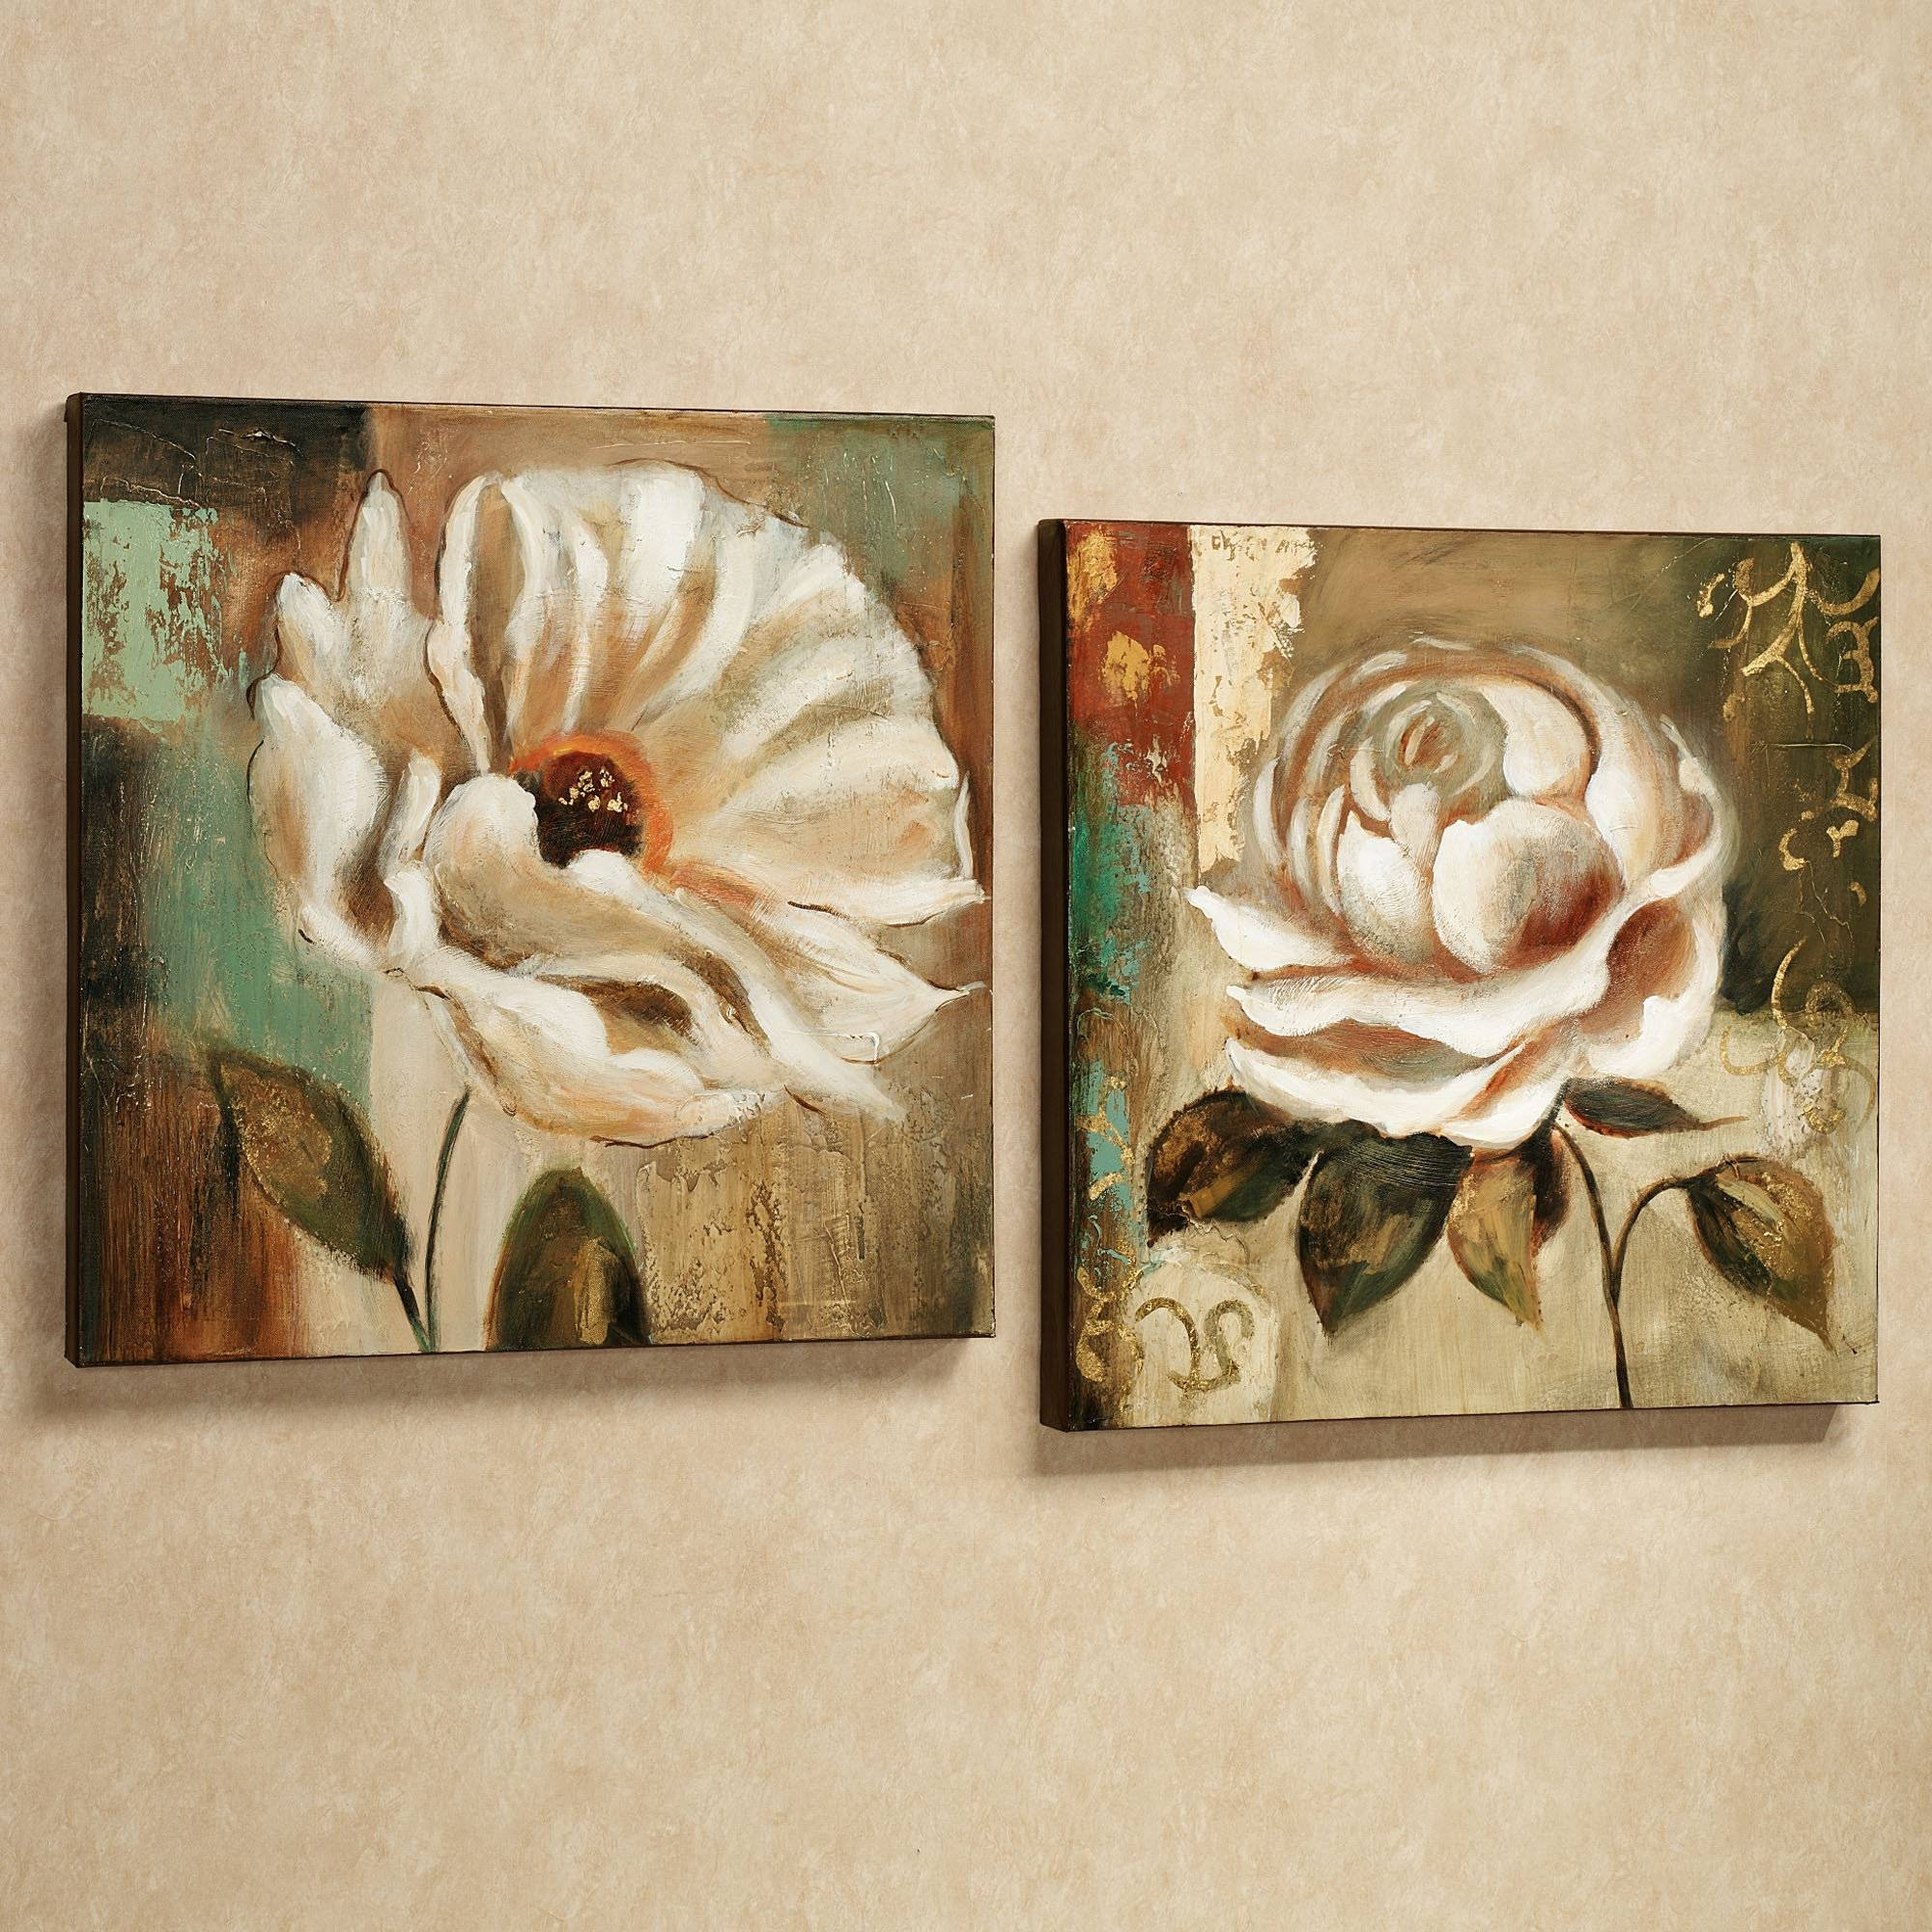 Wall Art Designs: Floral Canvas Wall Art Garden Canvas Floral Wall With Latest Multi Panel Canvas Wall Art (View 16 of 20)